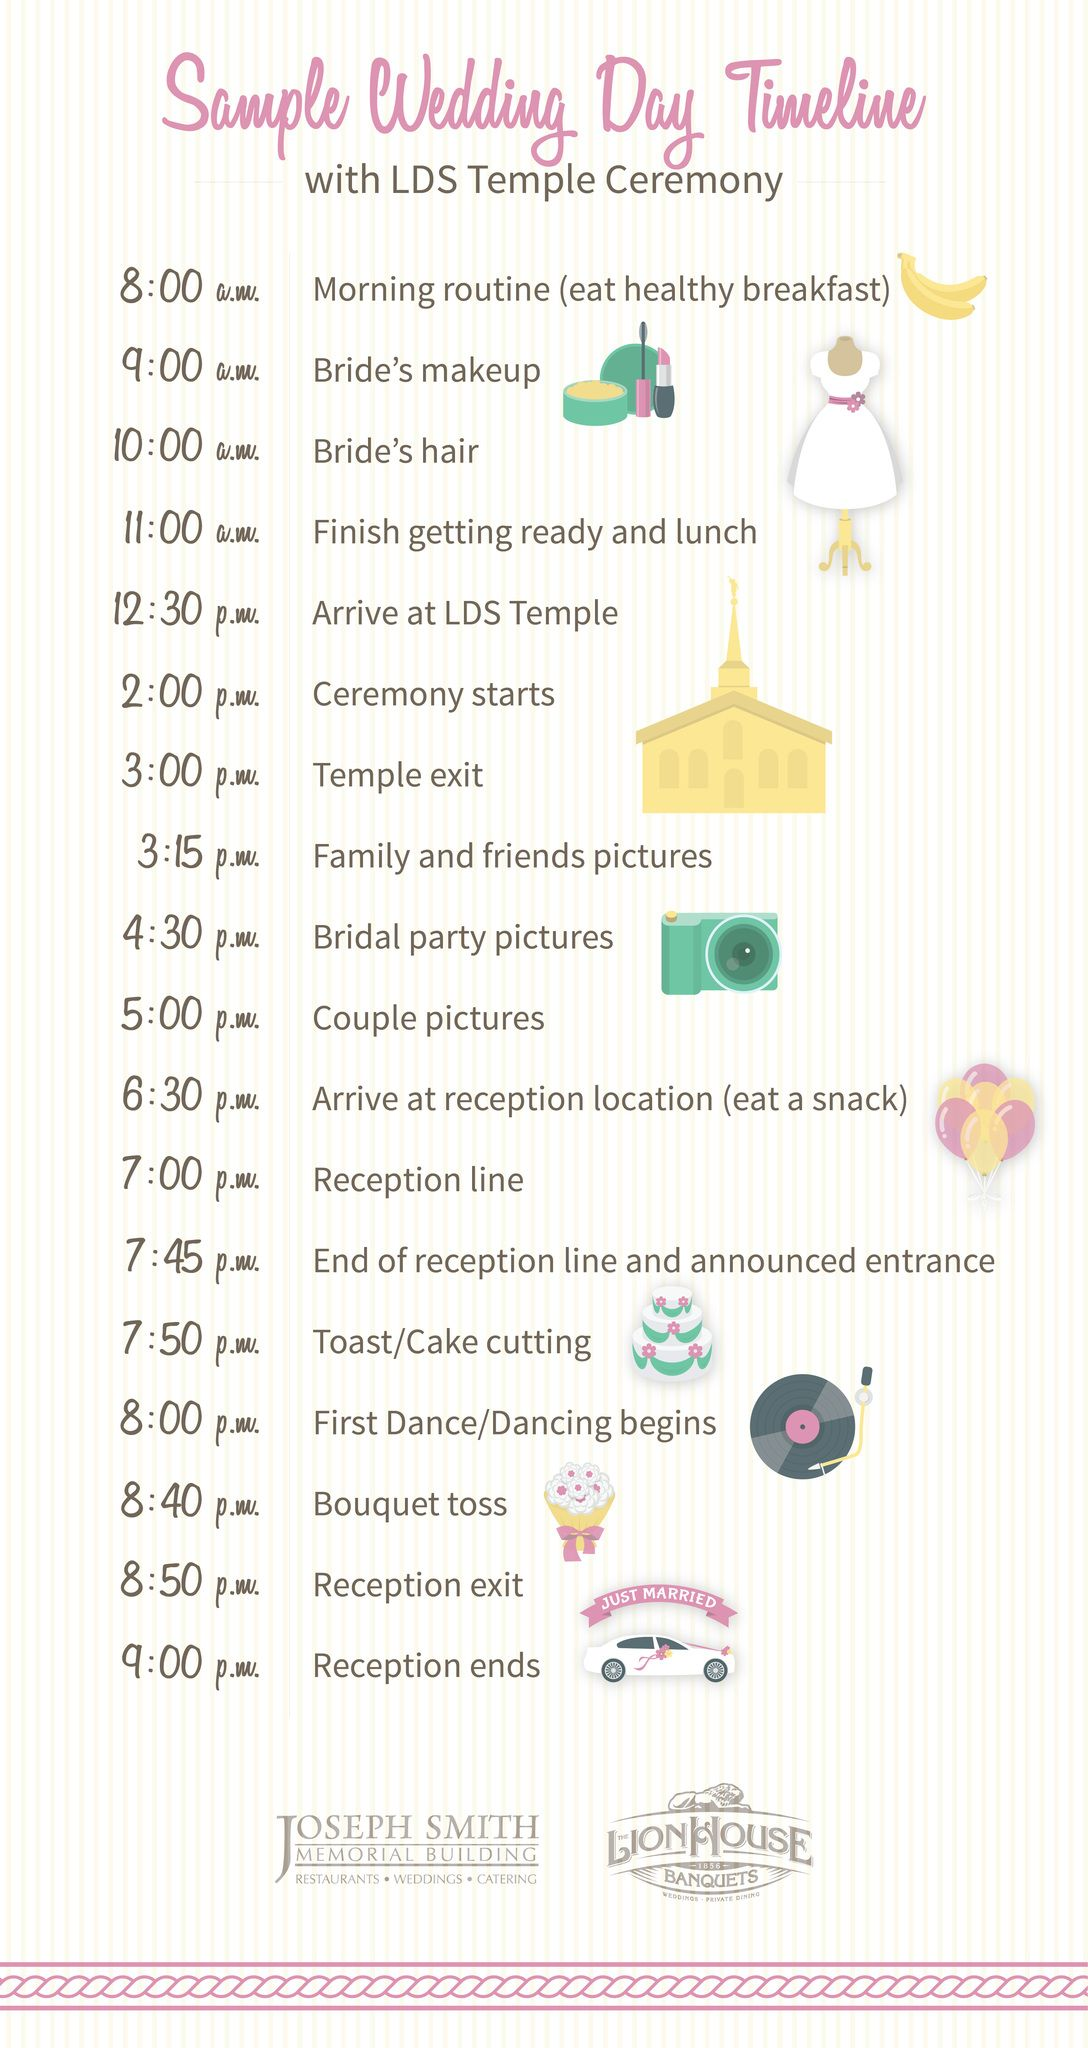 How To Build Your Wedding Day Timeline  Lds Temples Timeline And